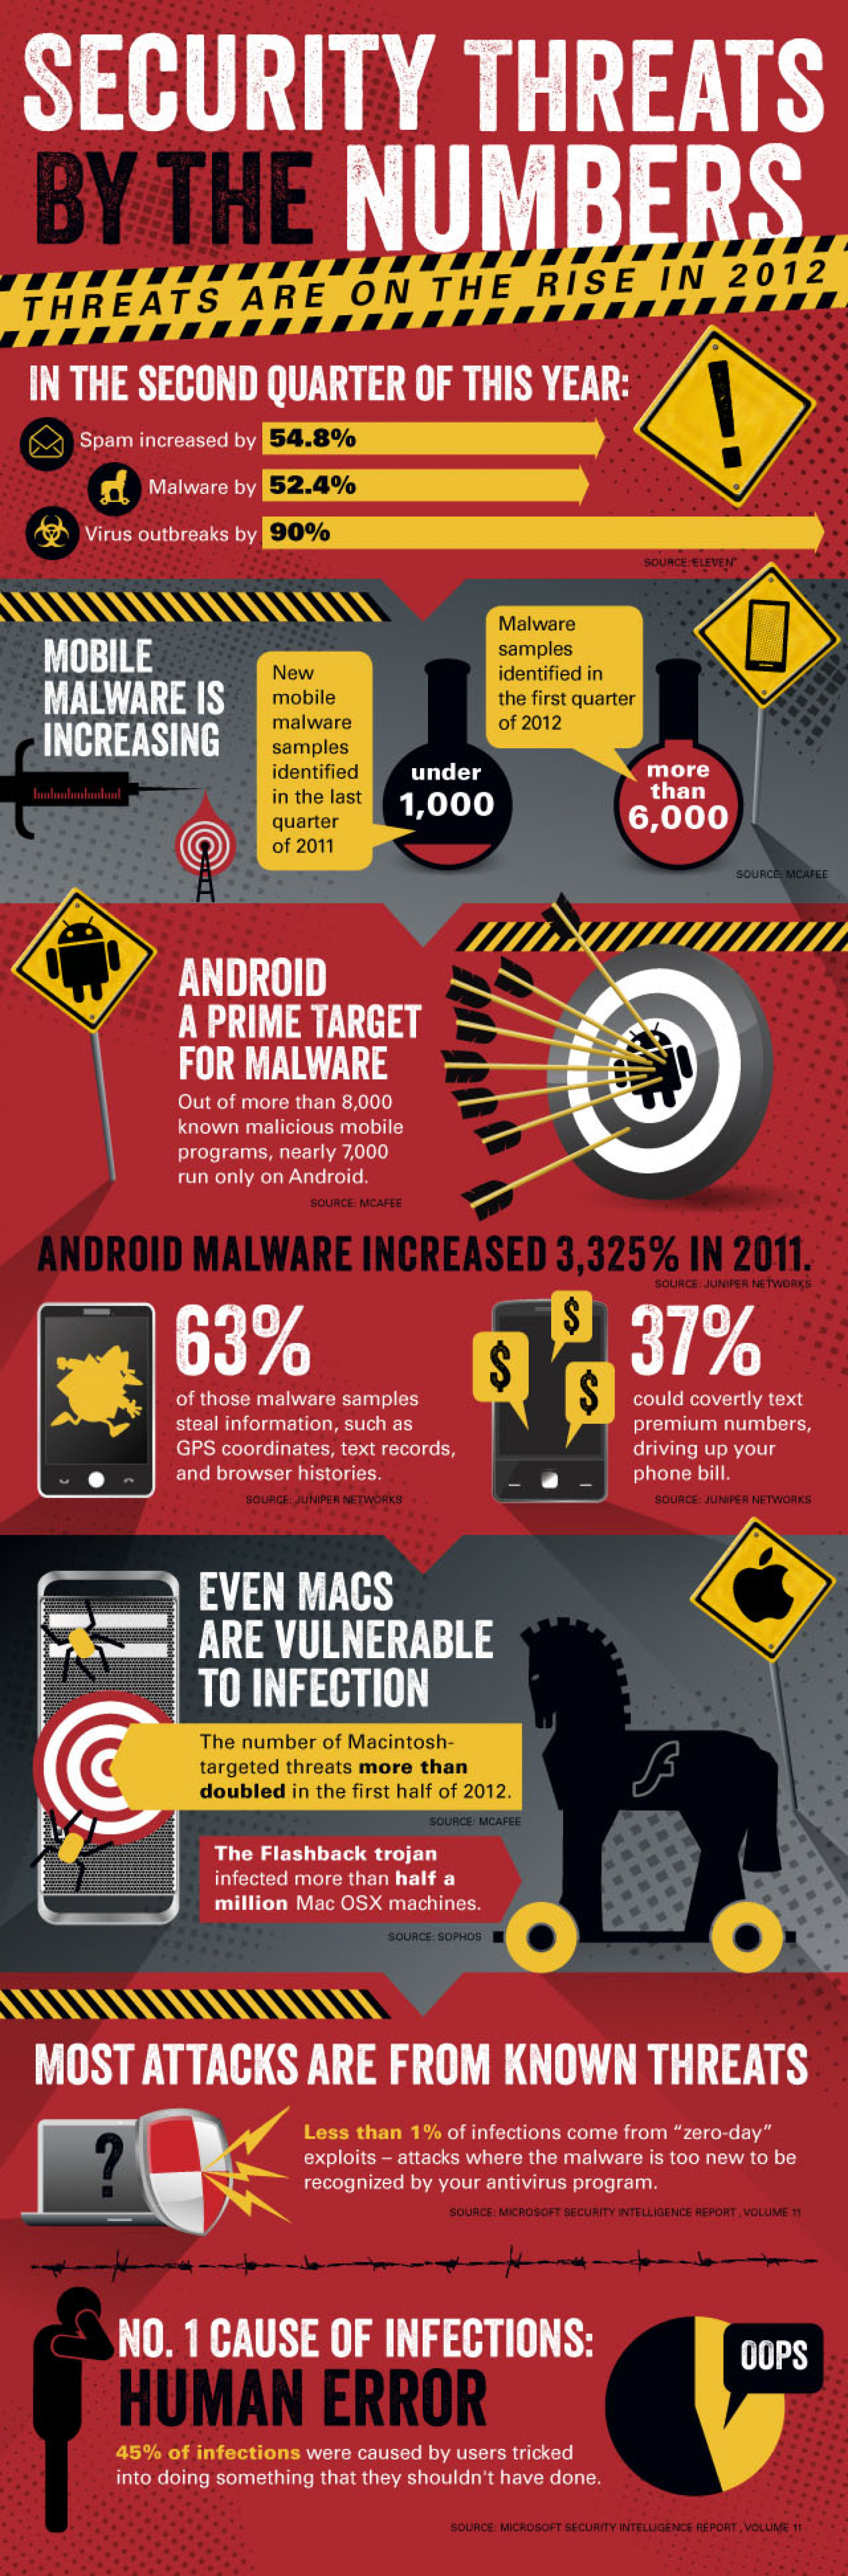 Security Threats By The Numbers Infographic